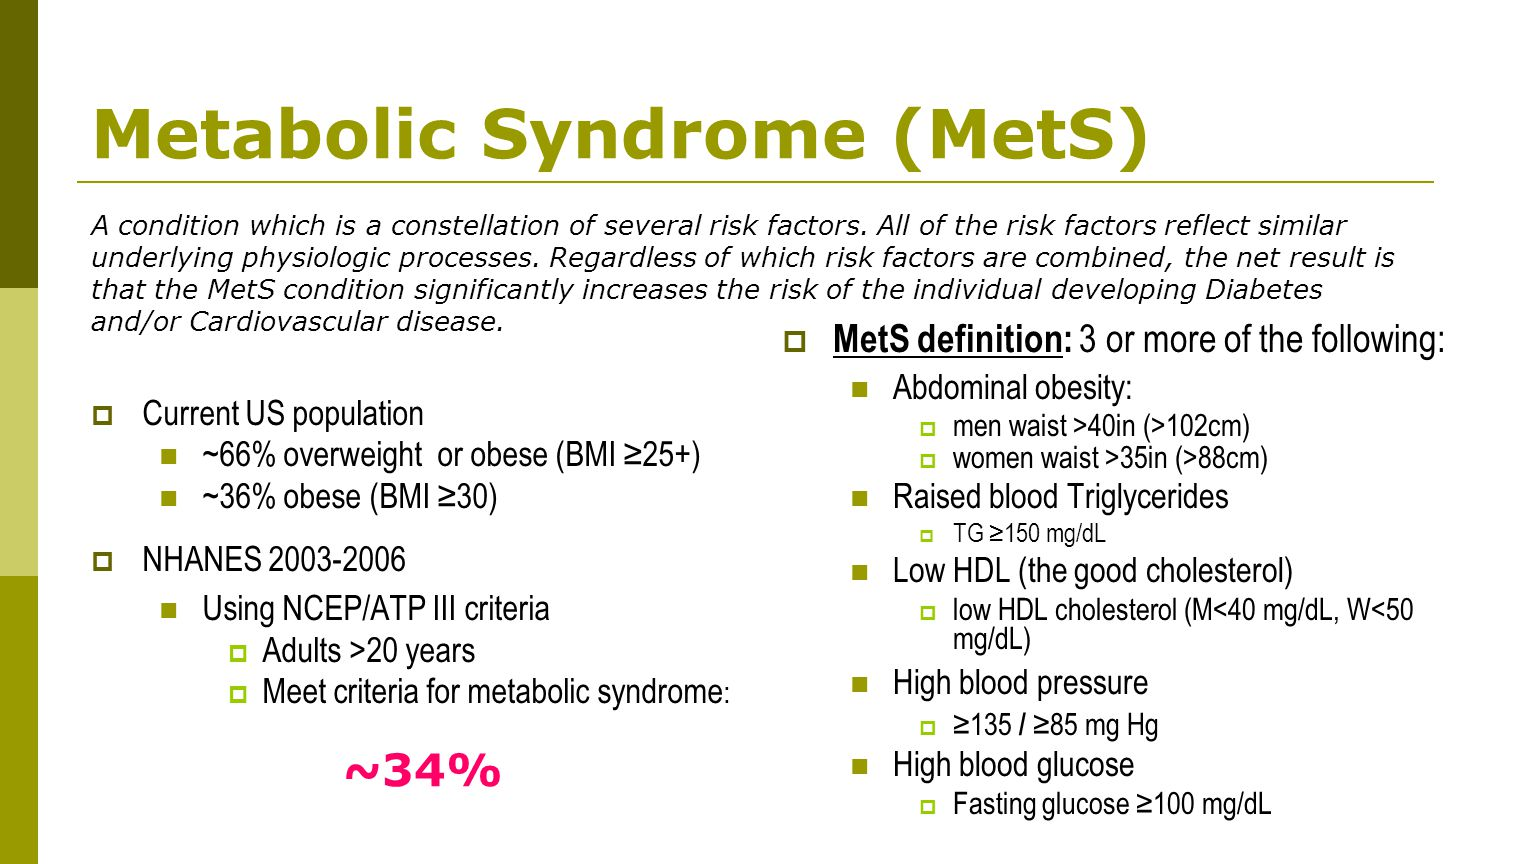 Metabolic Syndrome (MetS)  Current US population ~66% overweight or obese (BMI ≥25+) ~36% obese (BMI ≥30)  NHANES 2003-2006 Using NCEP/ATP III criteria  Adults >20 years  Meet criteria for metabolic syndrome :  MetS definition: 3 or more of the following: Abdominal obesity:  men waist >40in (>102cm)  women waist >35in (>88cm) Raised blood Triglycerides  TG ≥150 mg/dL Low HDL (the good cholesterol)  low HDL cholesterol (M<40 mg/dL, W<50 mg/dL) High blood pressure  ≥135 / ≥85 mg Hg High blood glucose  Fasting glucose ≥100 mg/dL ~34% A condition which is a constellation of several risk factors.